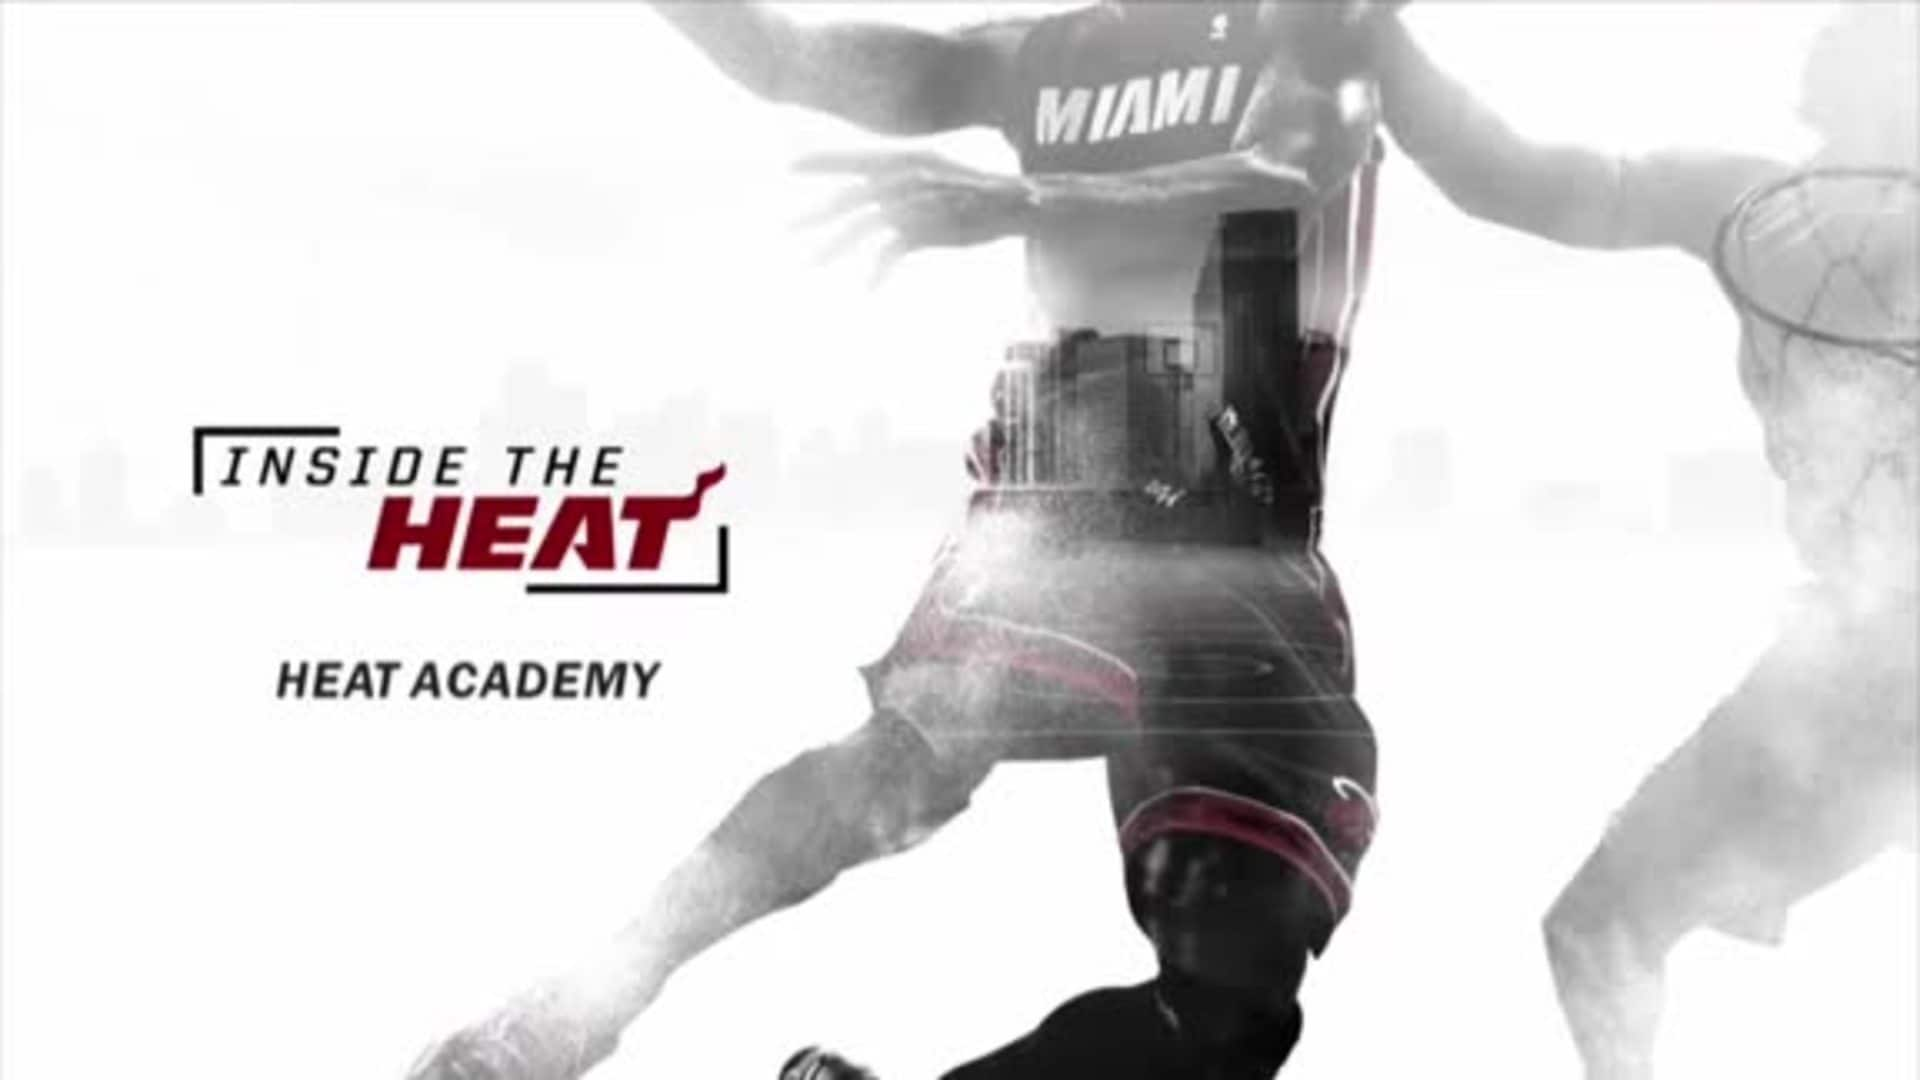 Inside the HEAT: HEAT Academy